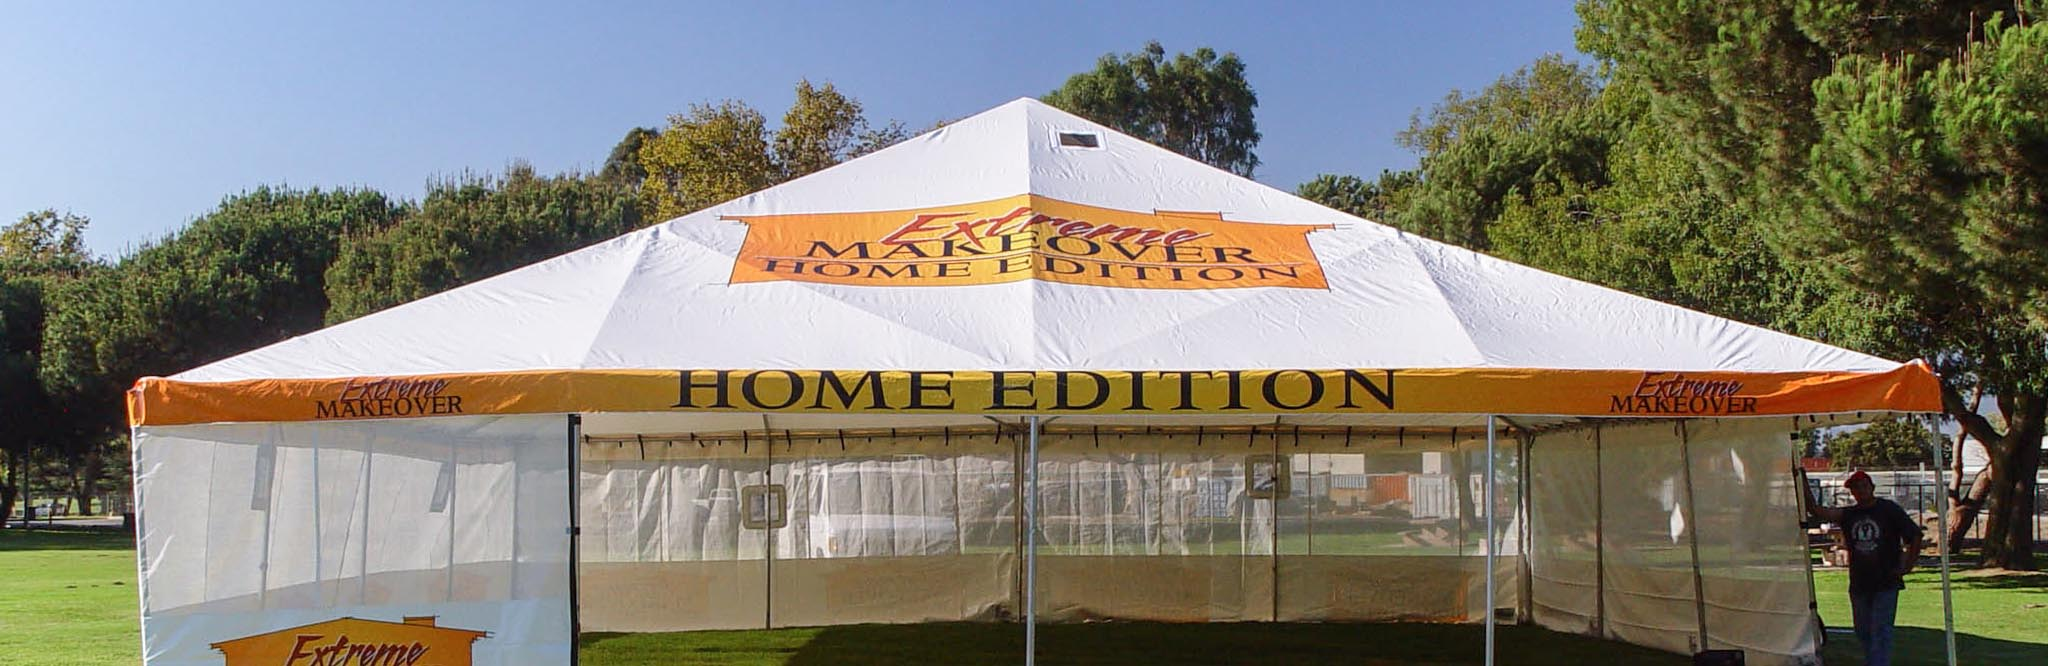 extreme-makeover-home-edition-tent-header.jpg